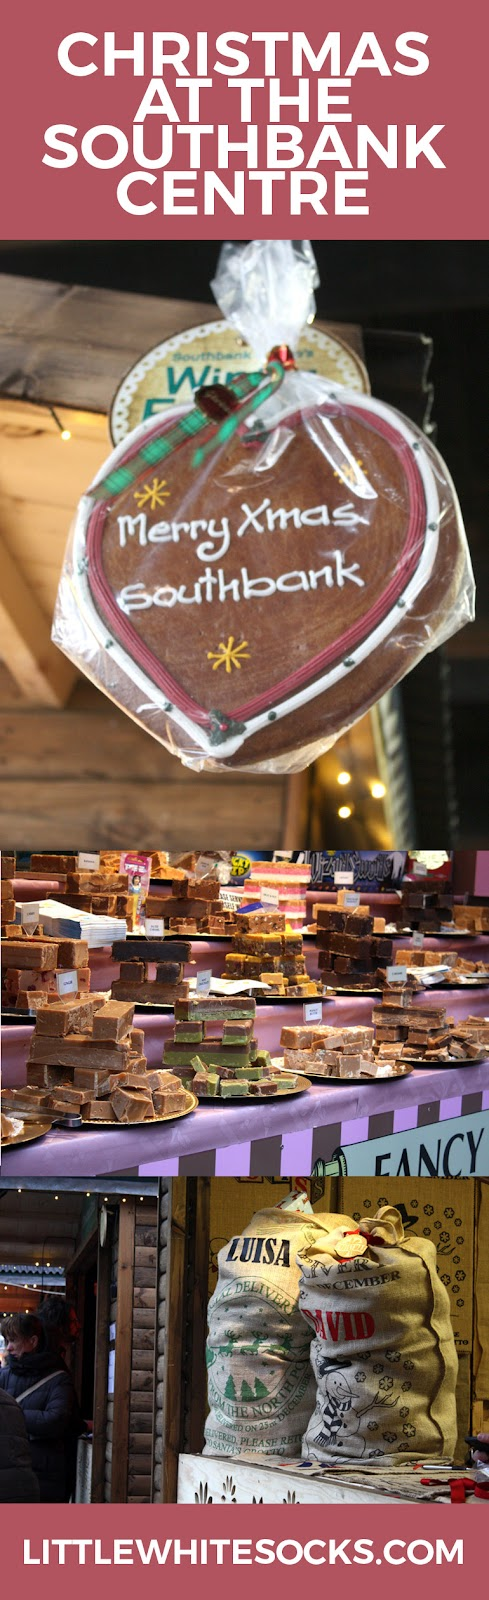 christmas at the southbank centre london